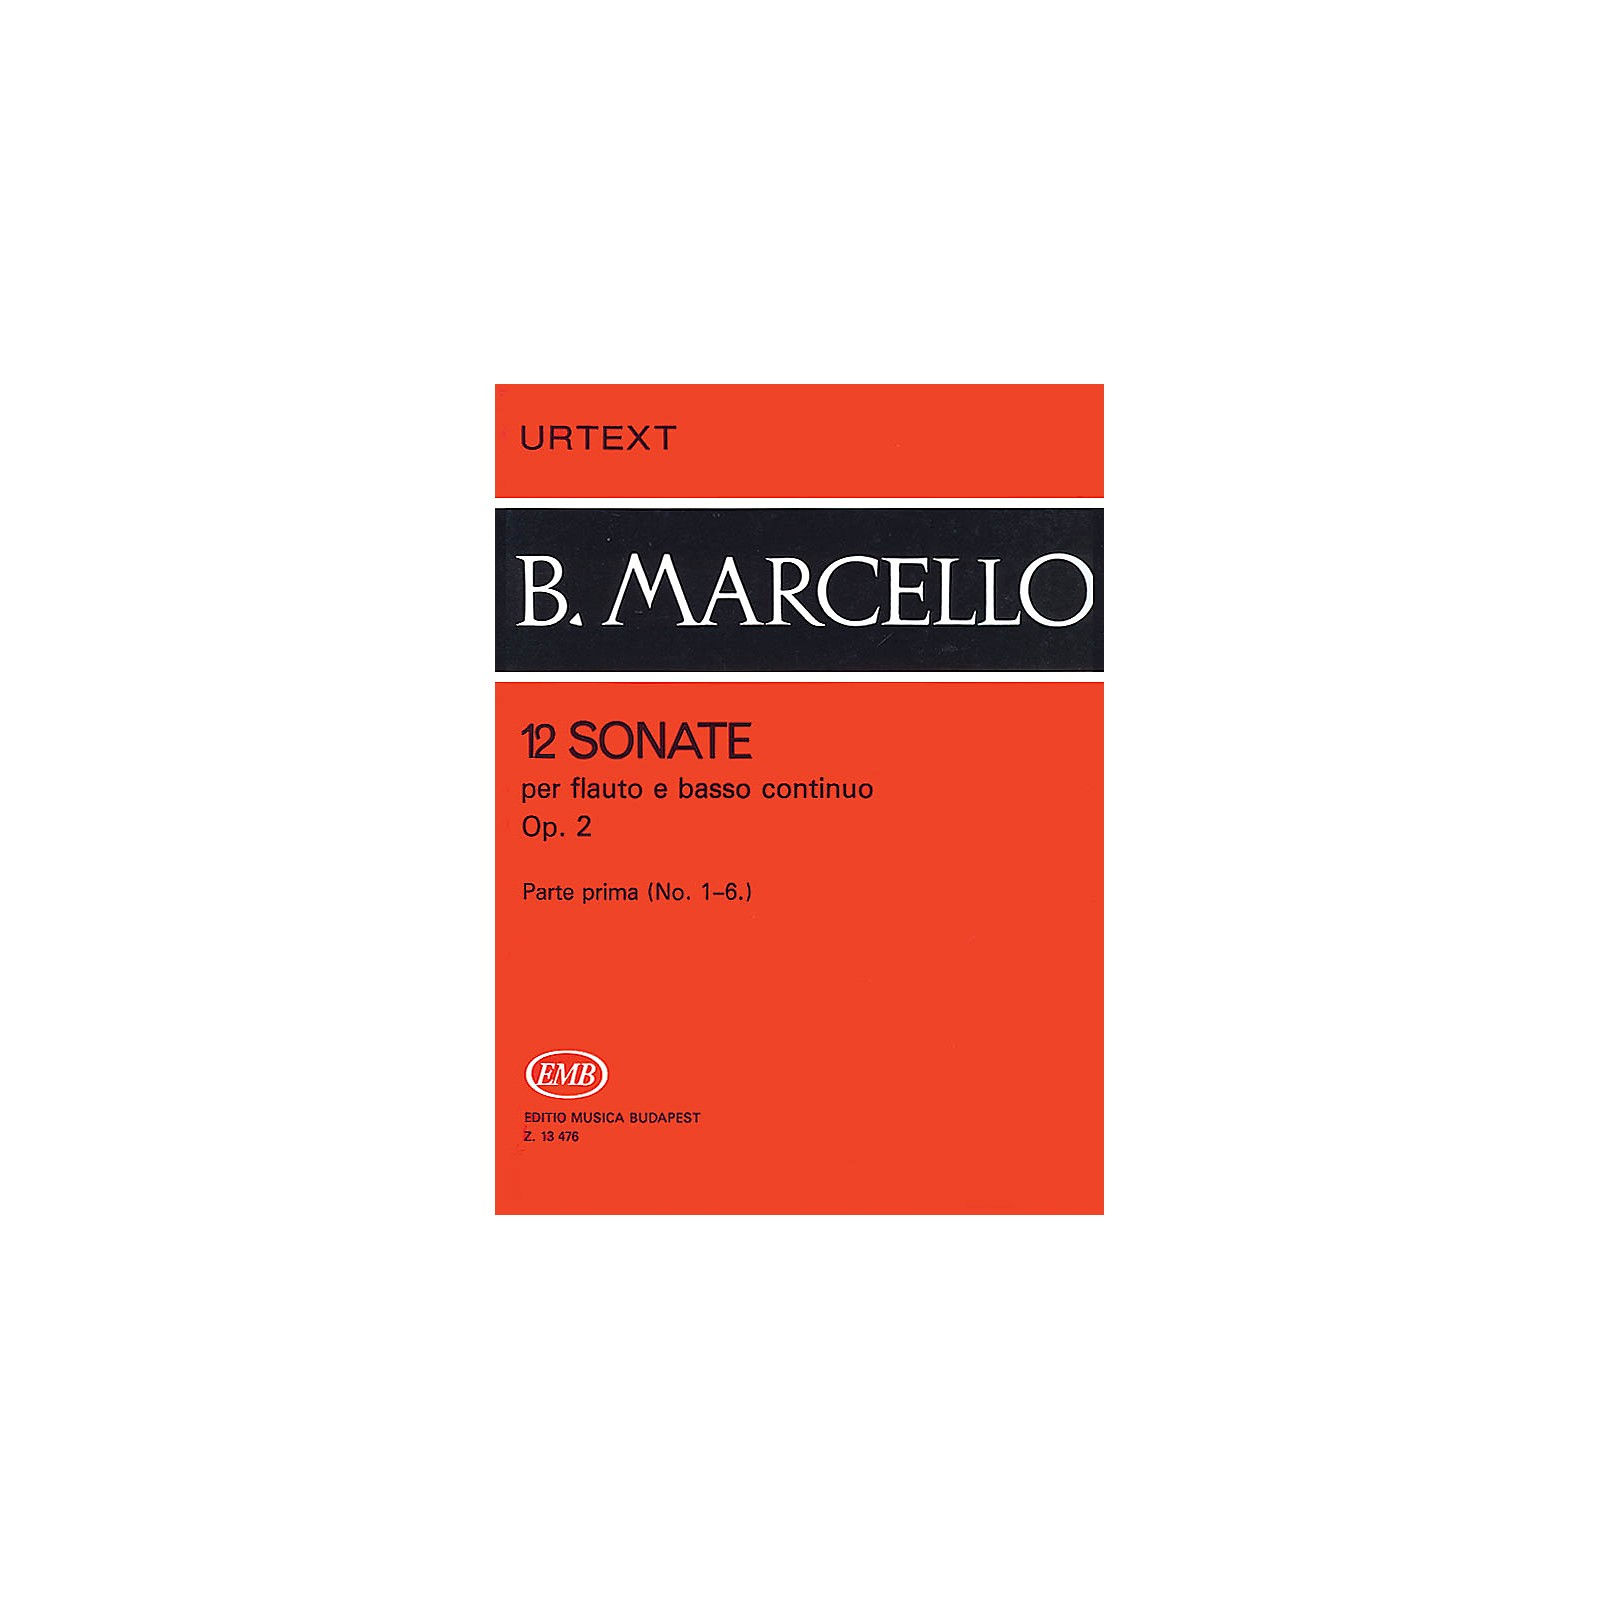 Editio Musica Budapest 12 Sonatas for Flute and Basso Continuo, Op. 2 - Volume 1 EMB Series by Benedetto Marcello